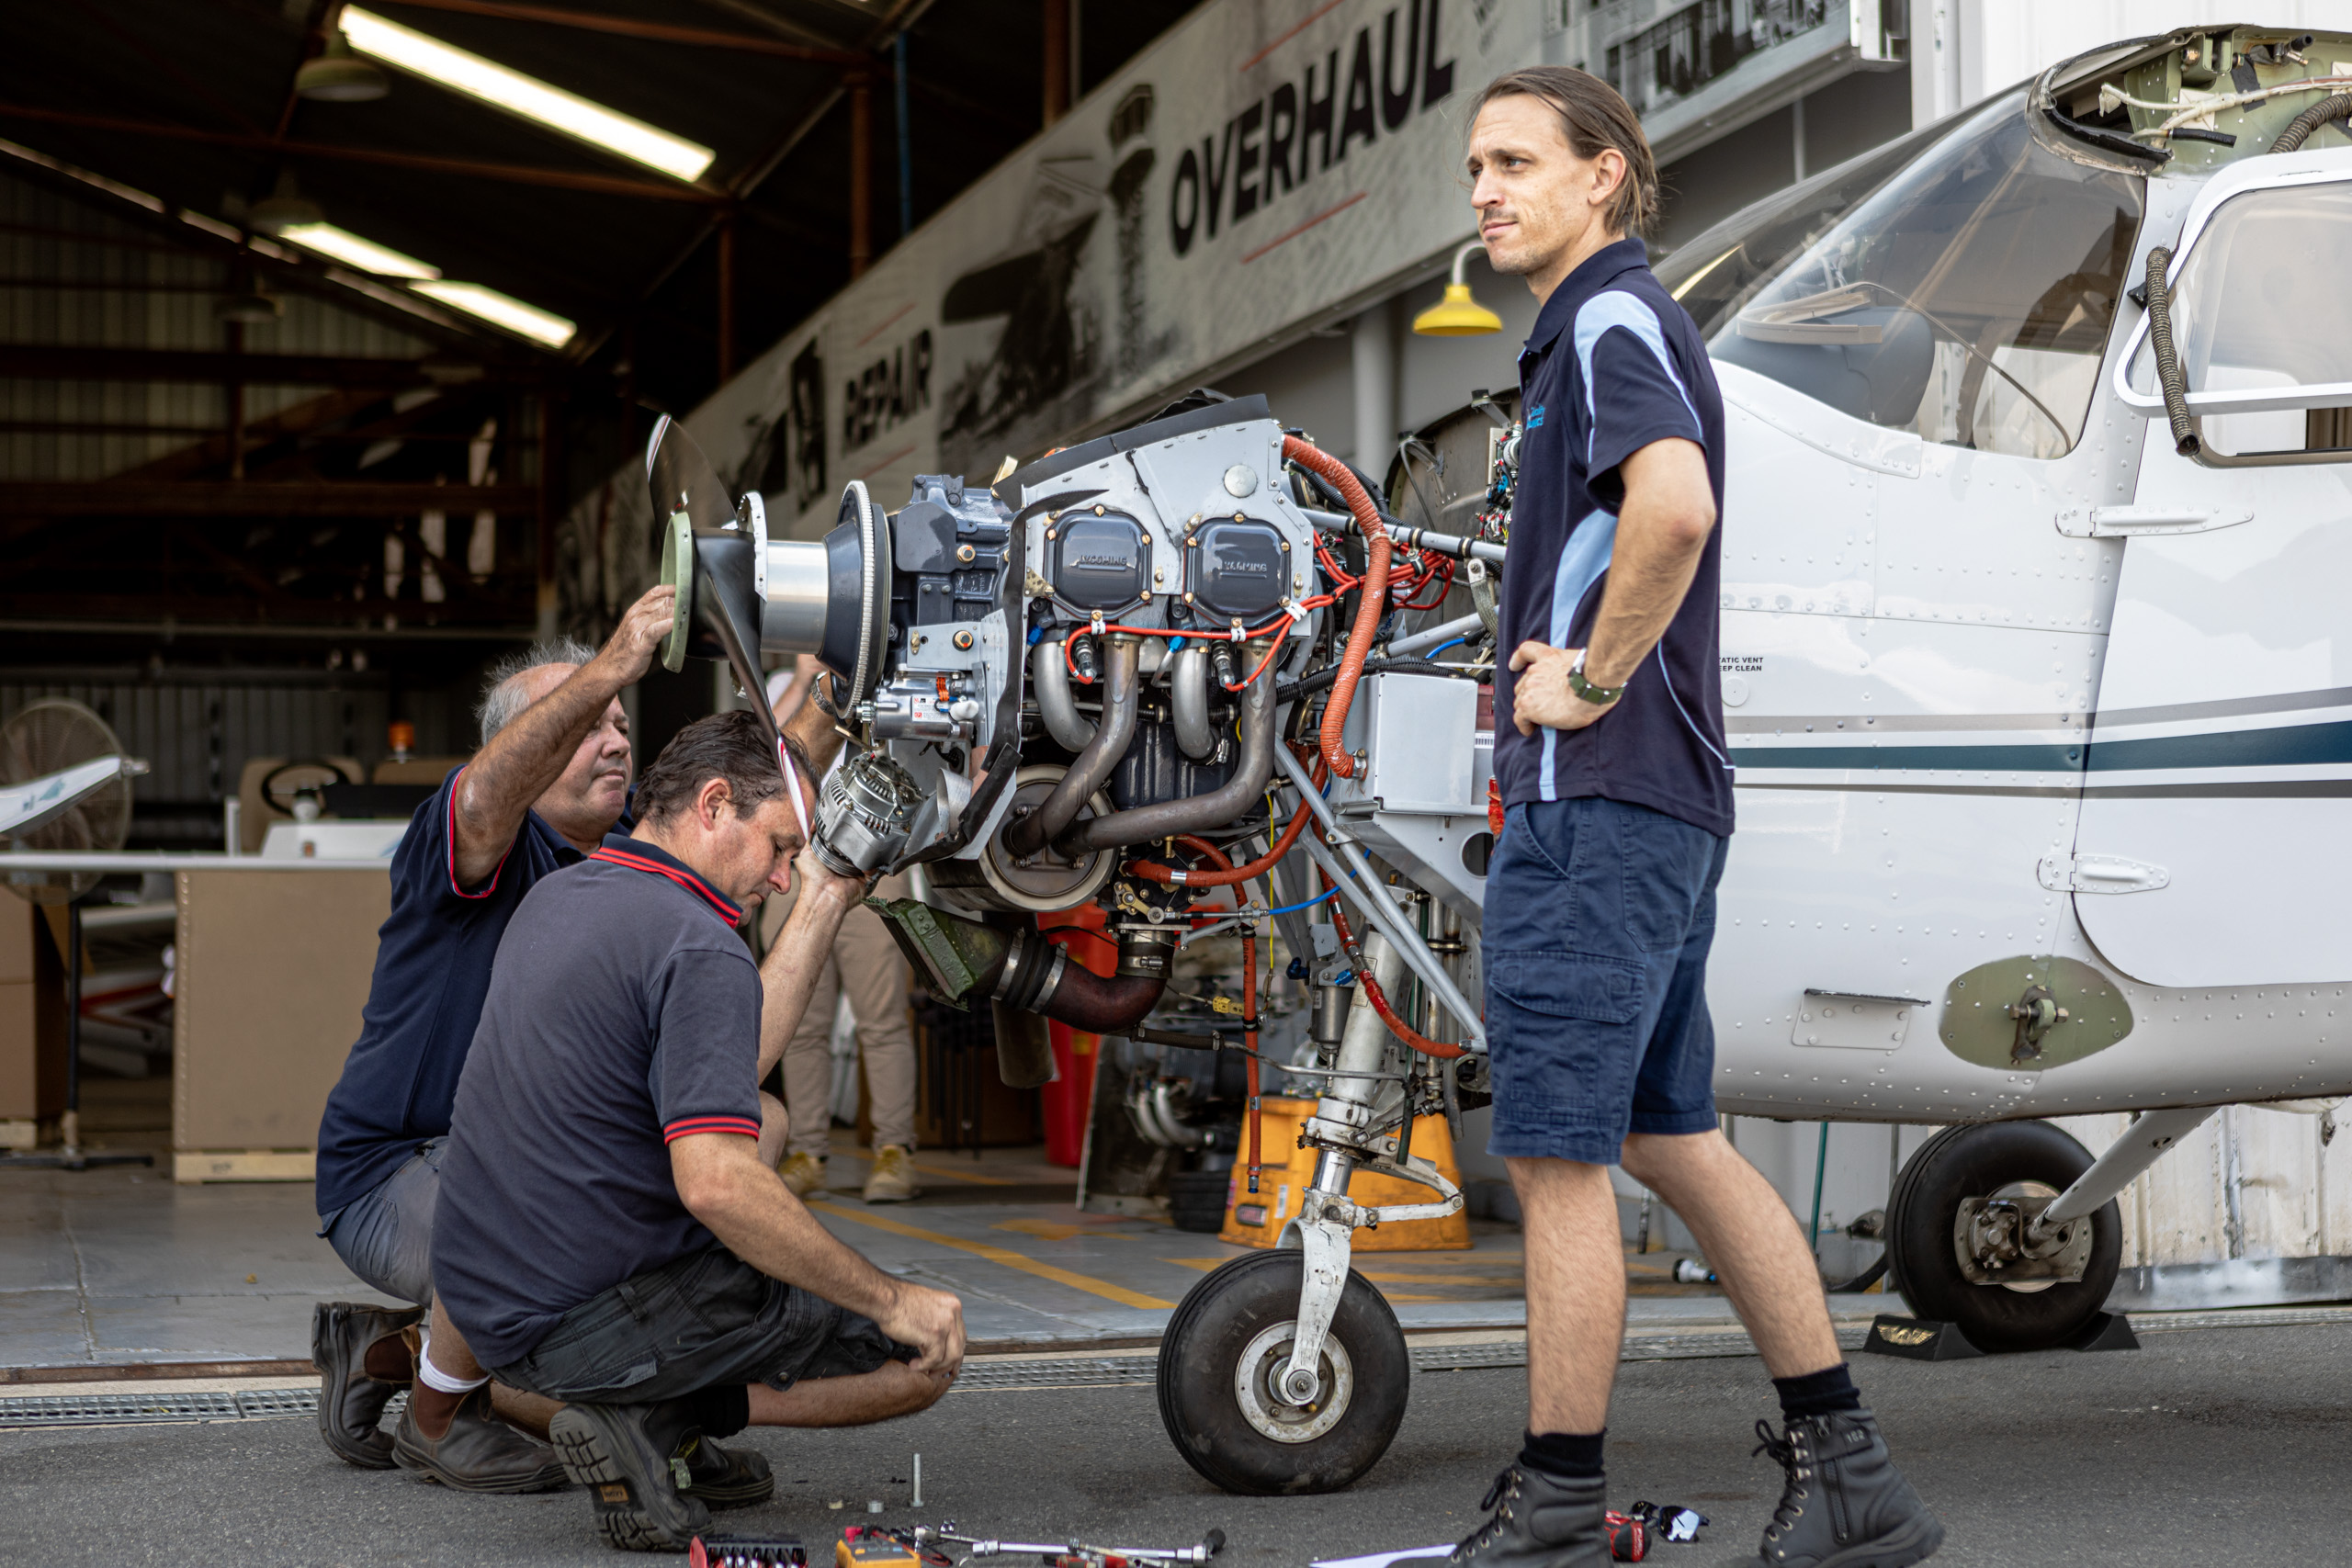 Study Aircraft Engineering in Brisbane